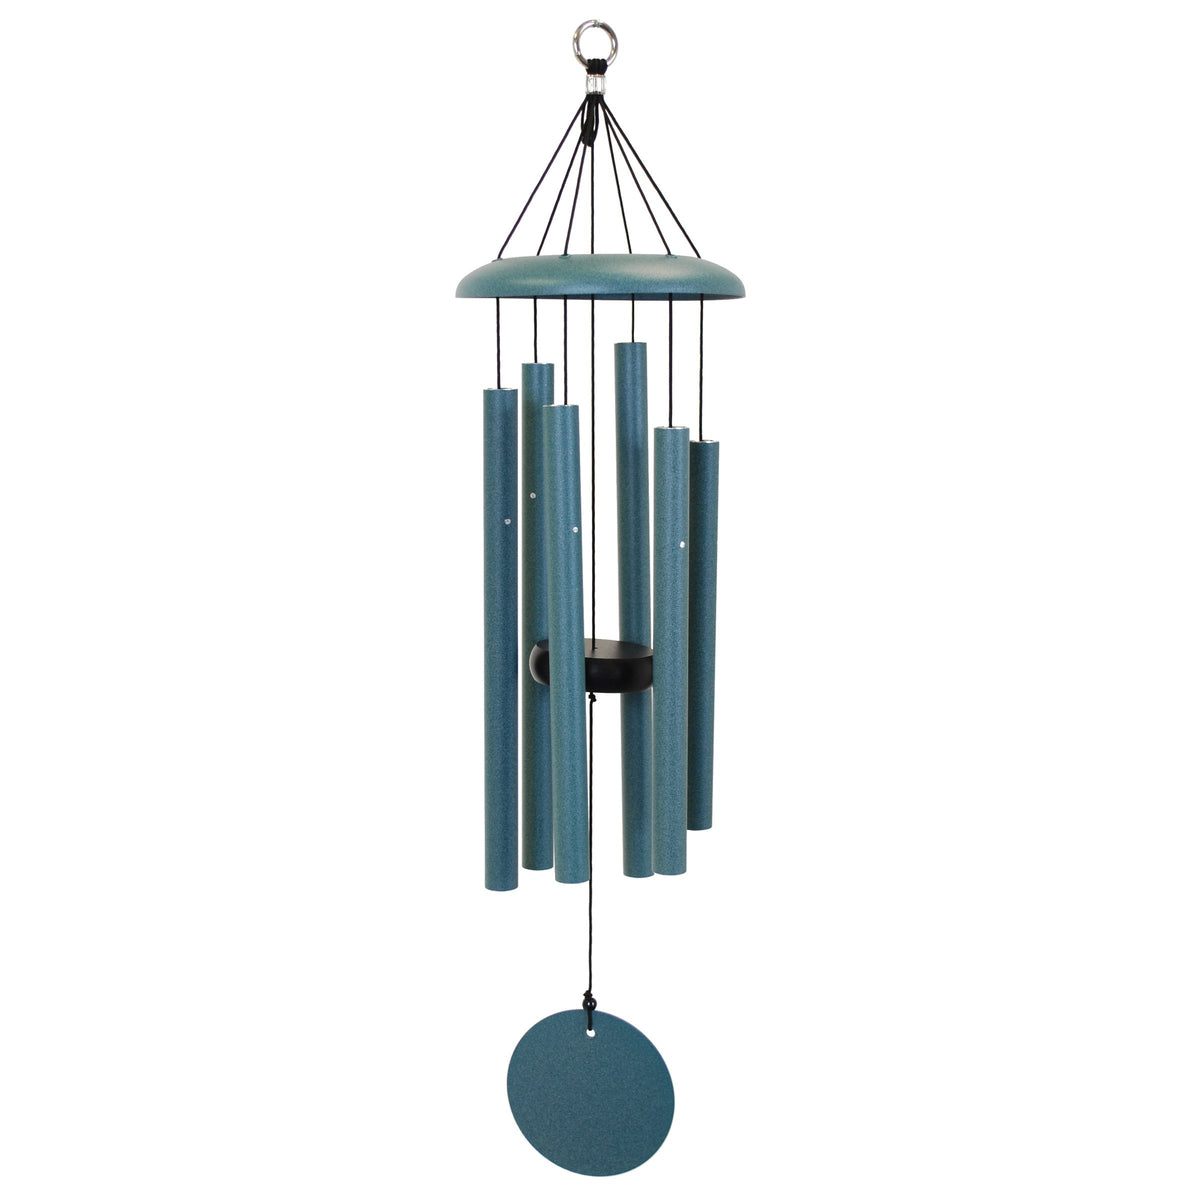 "Corinthian Bells 27"" Chime Patina Green Windchime"